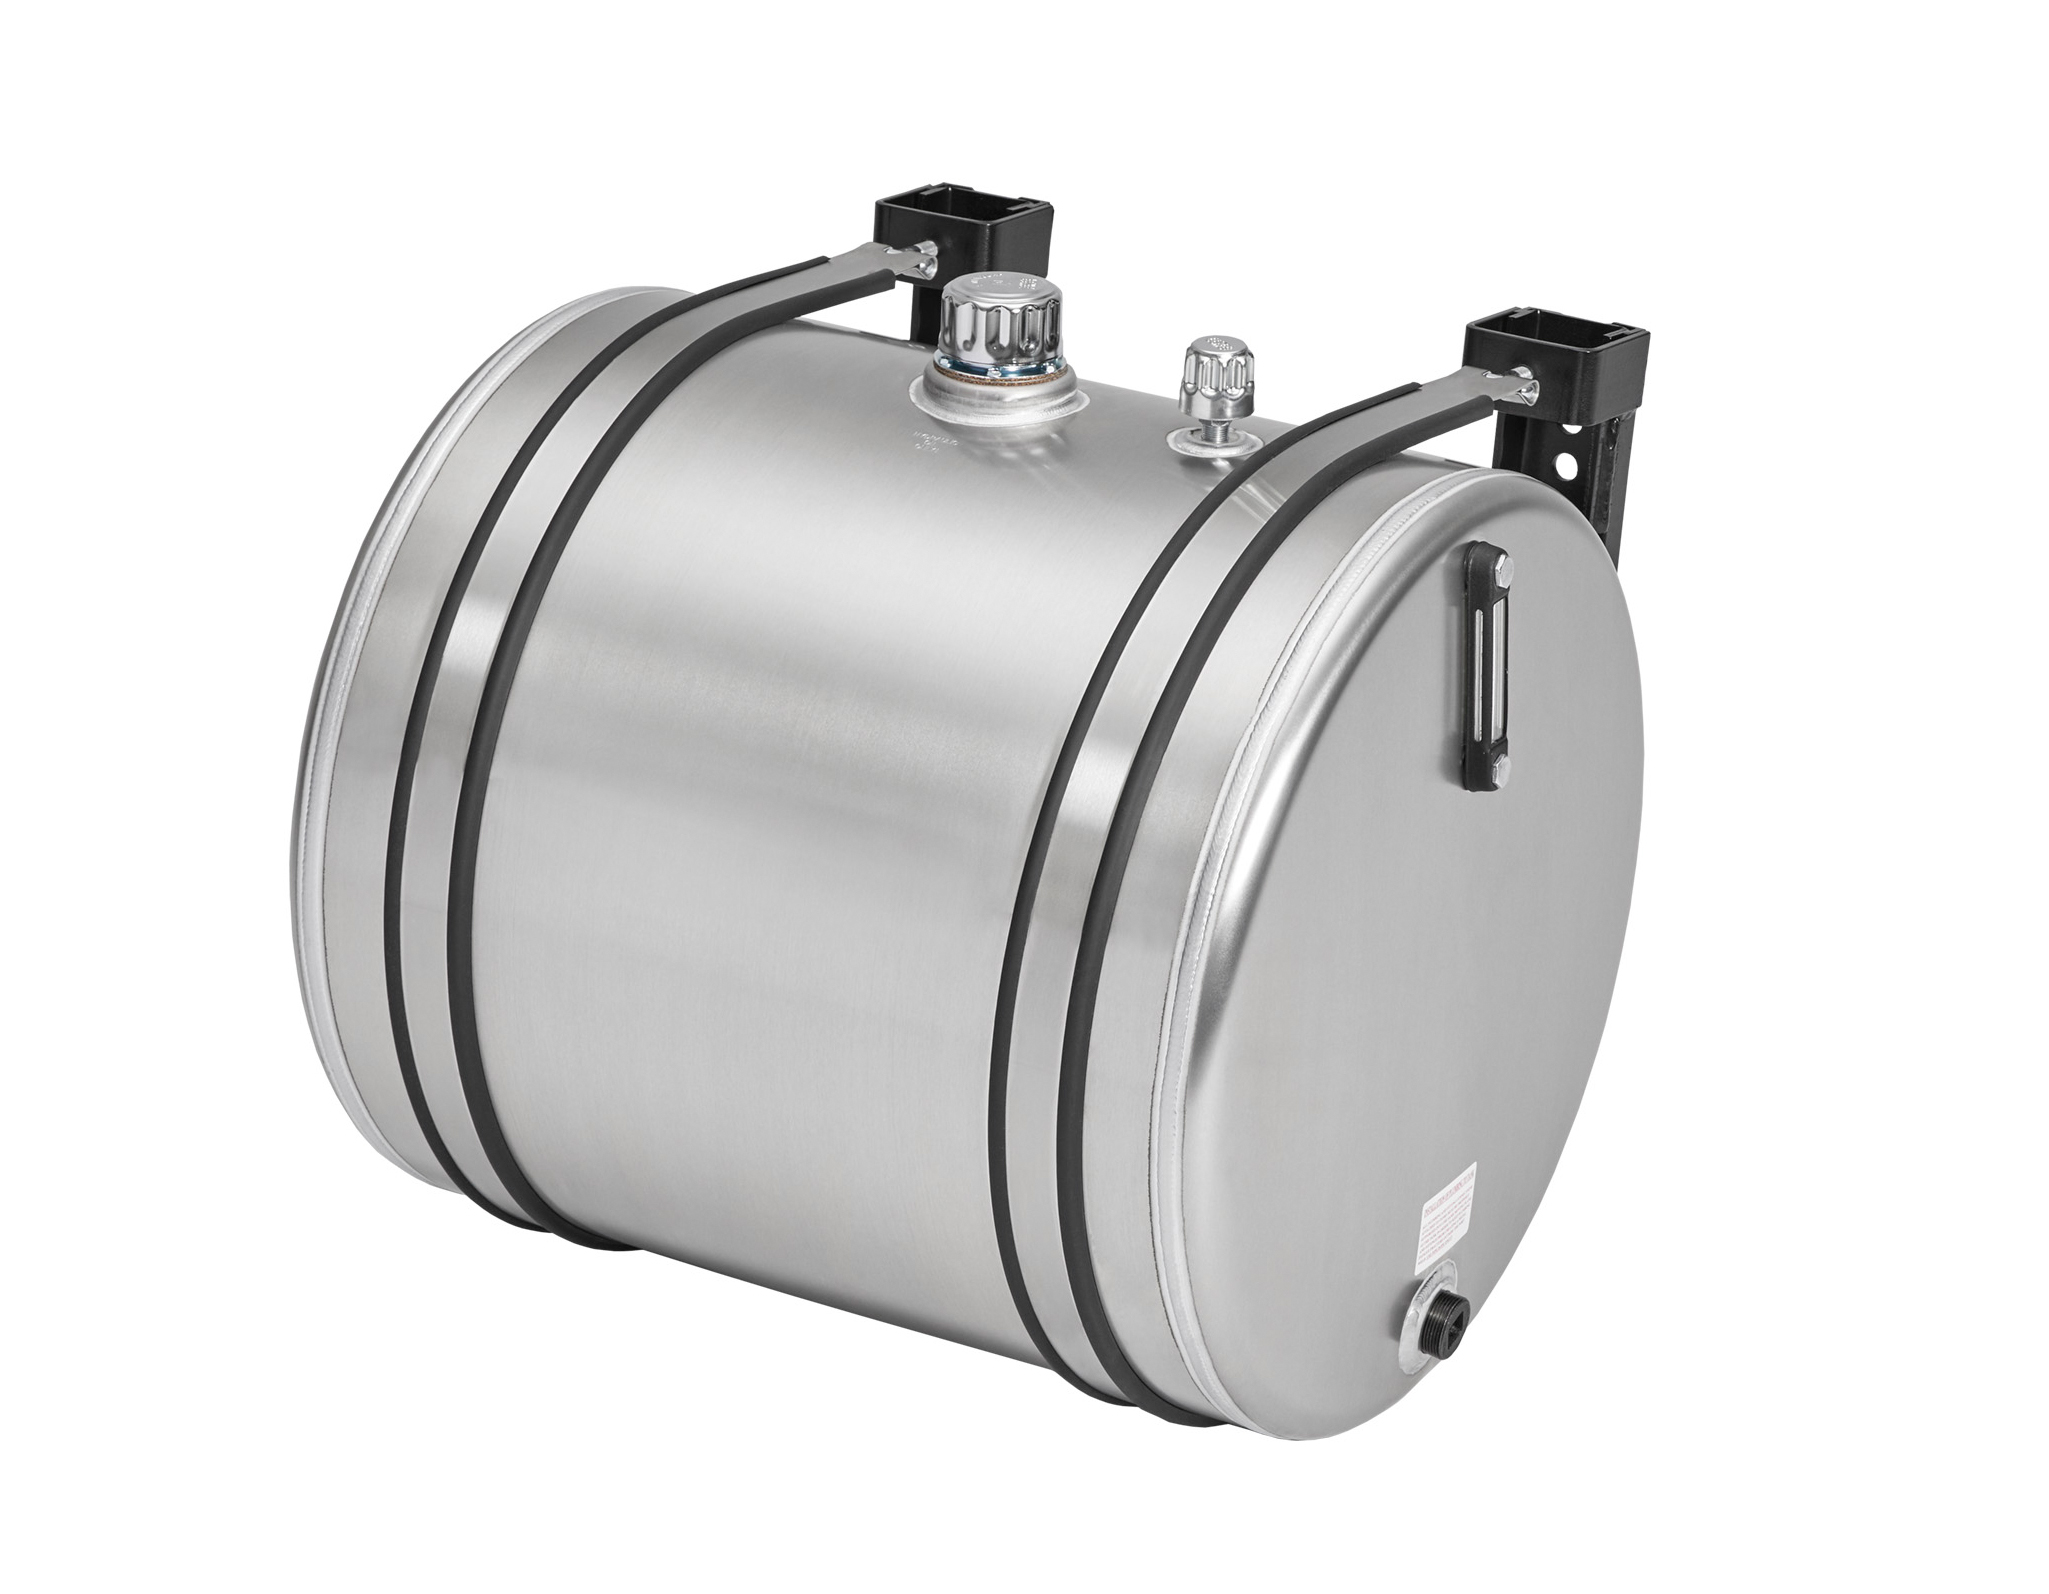 Saddlemount-Tanks - Aluminum-Saddlemount-50-Gallon